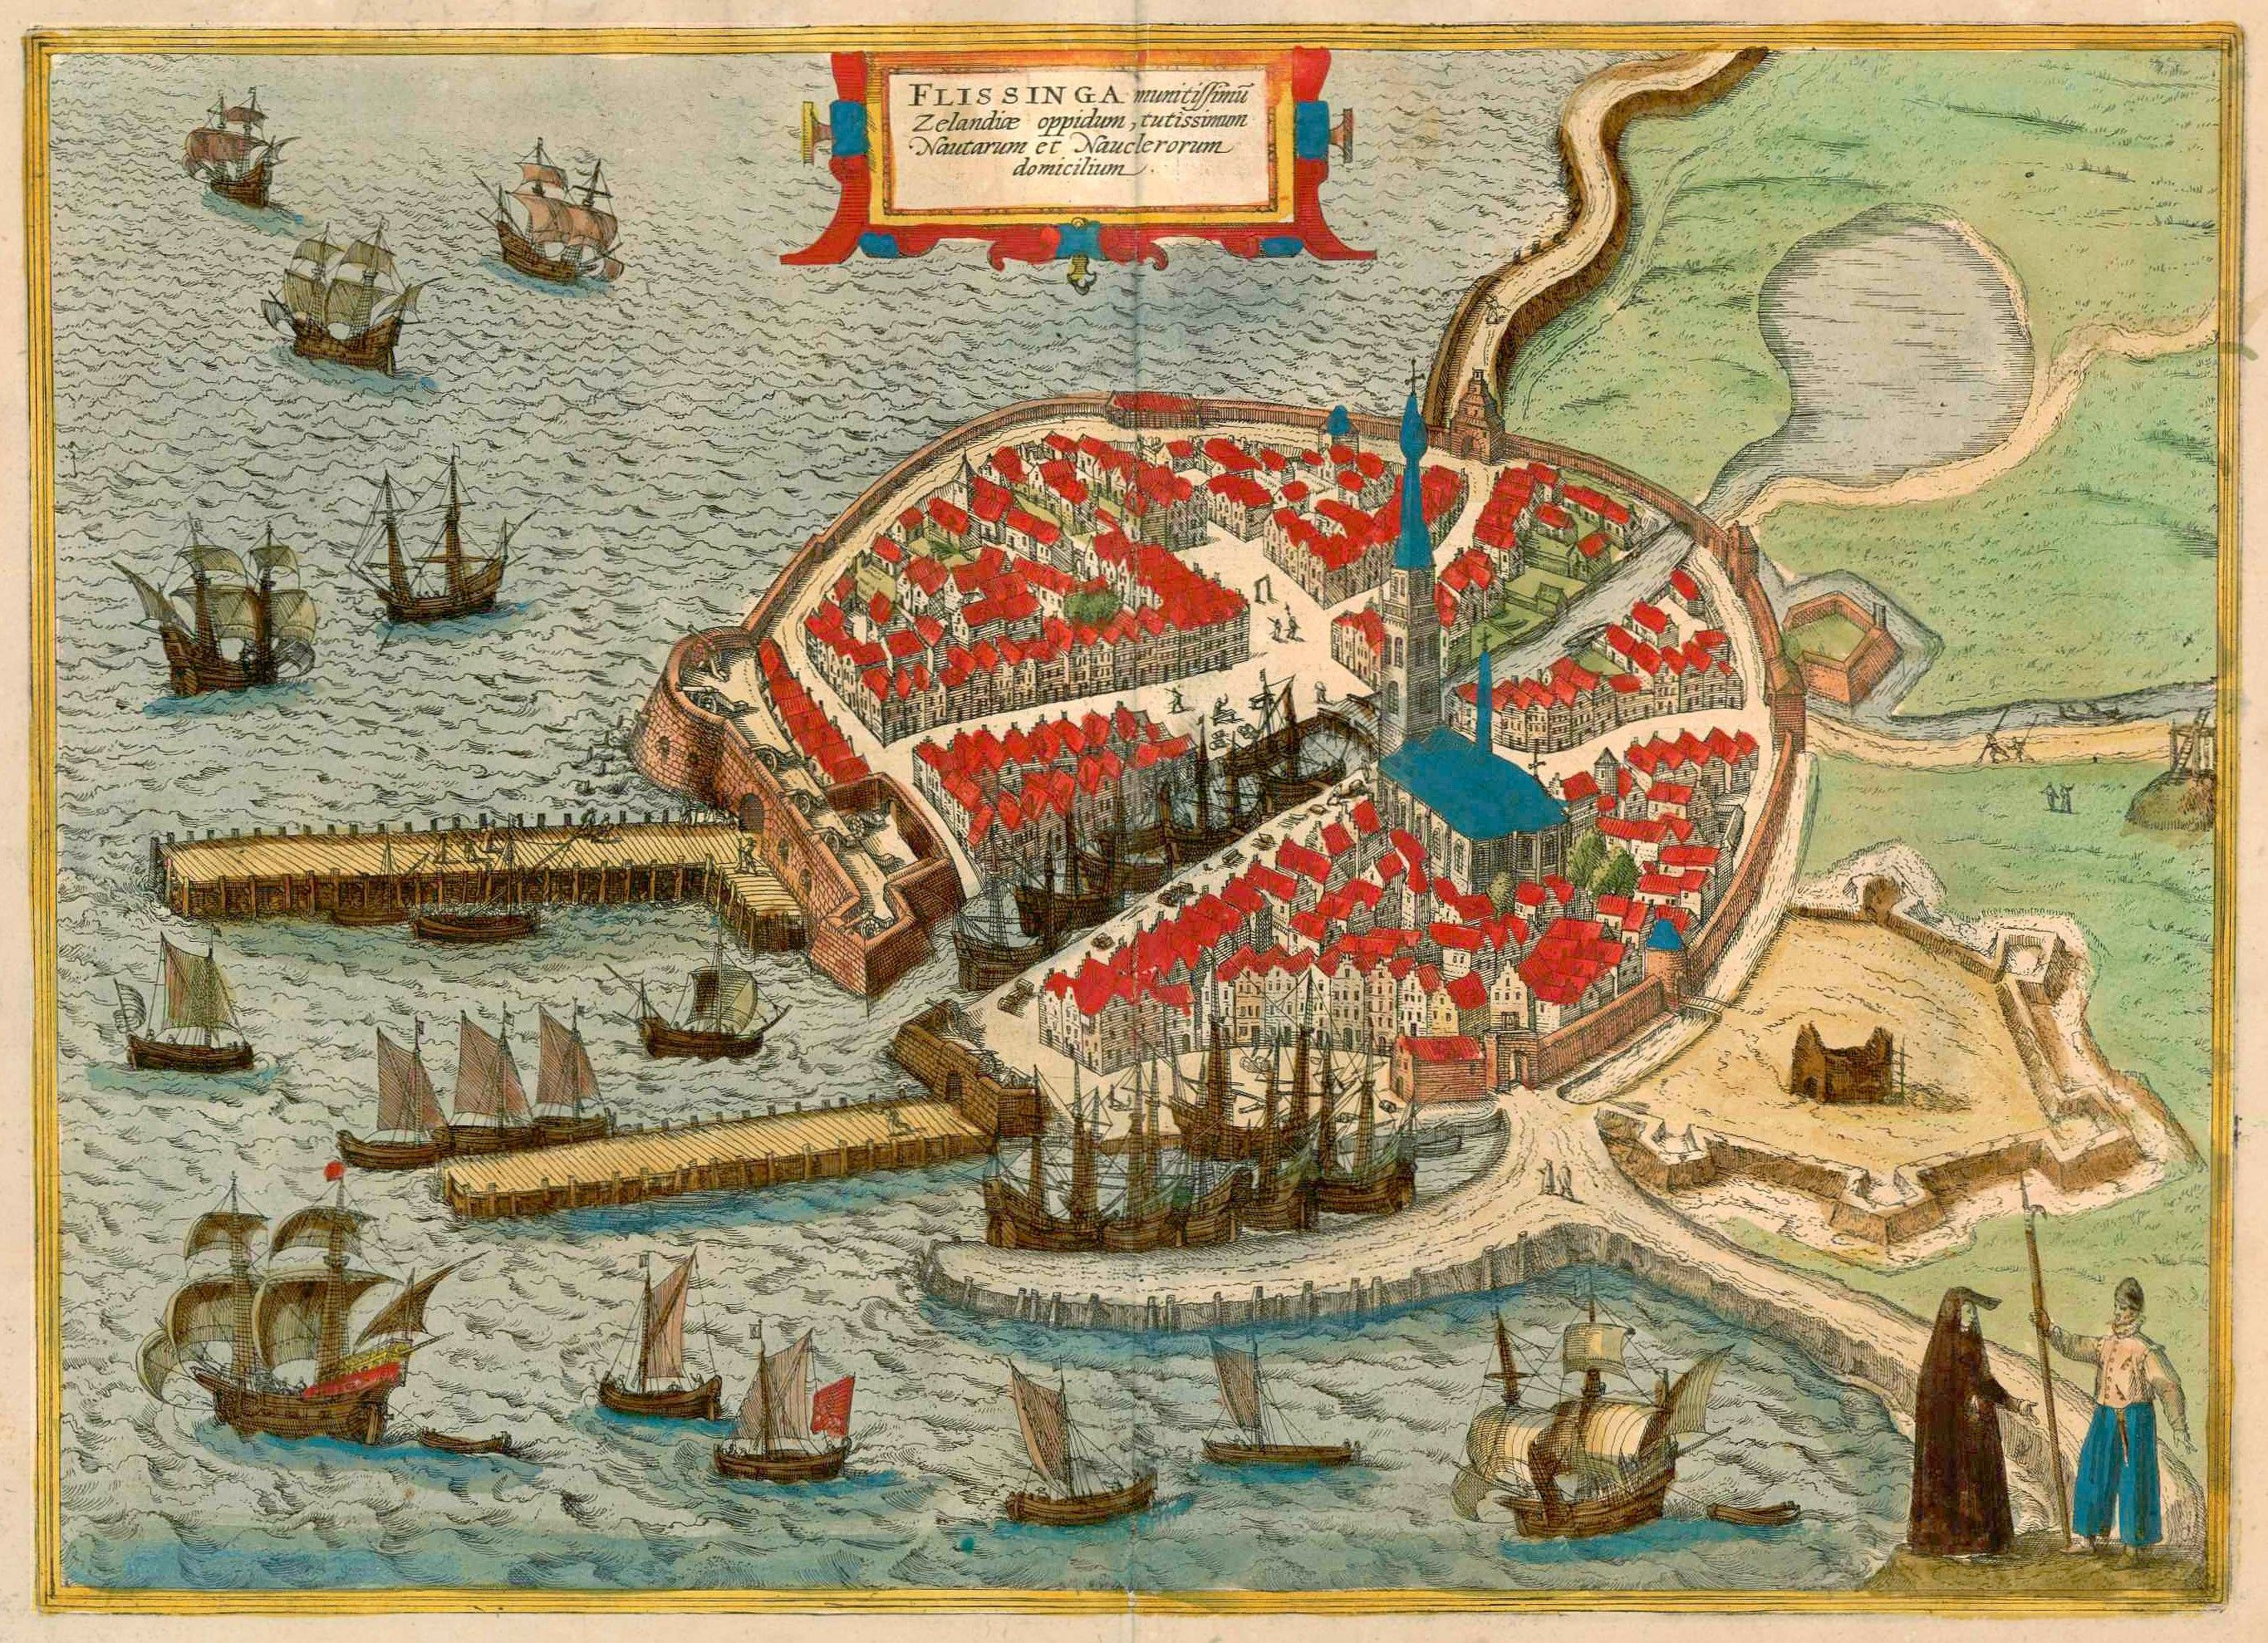 1593 map of the city of Vlissingen